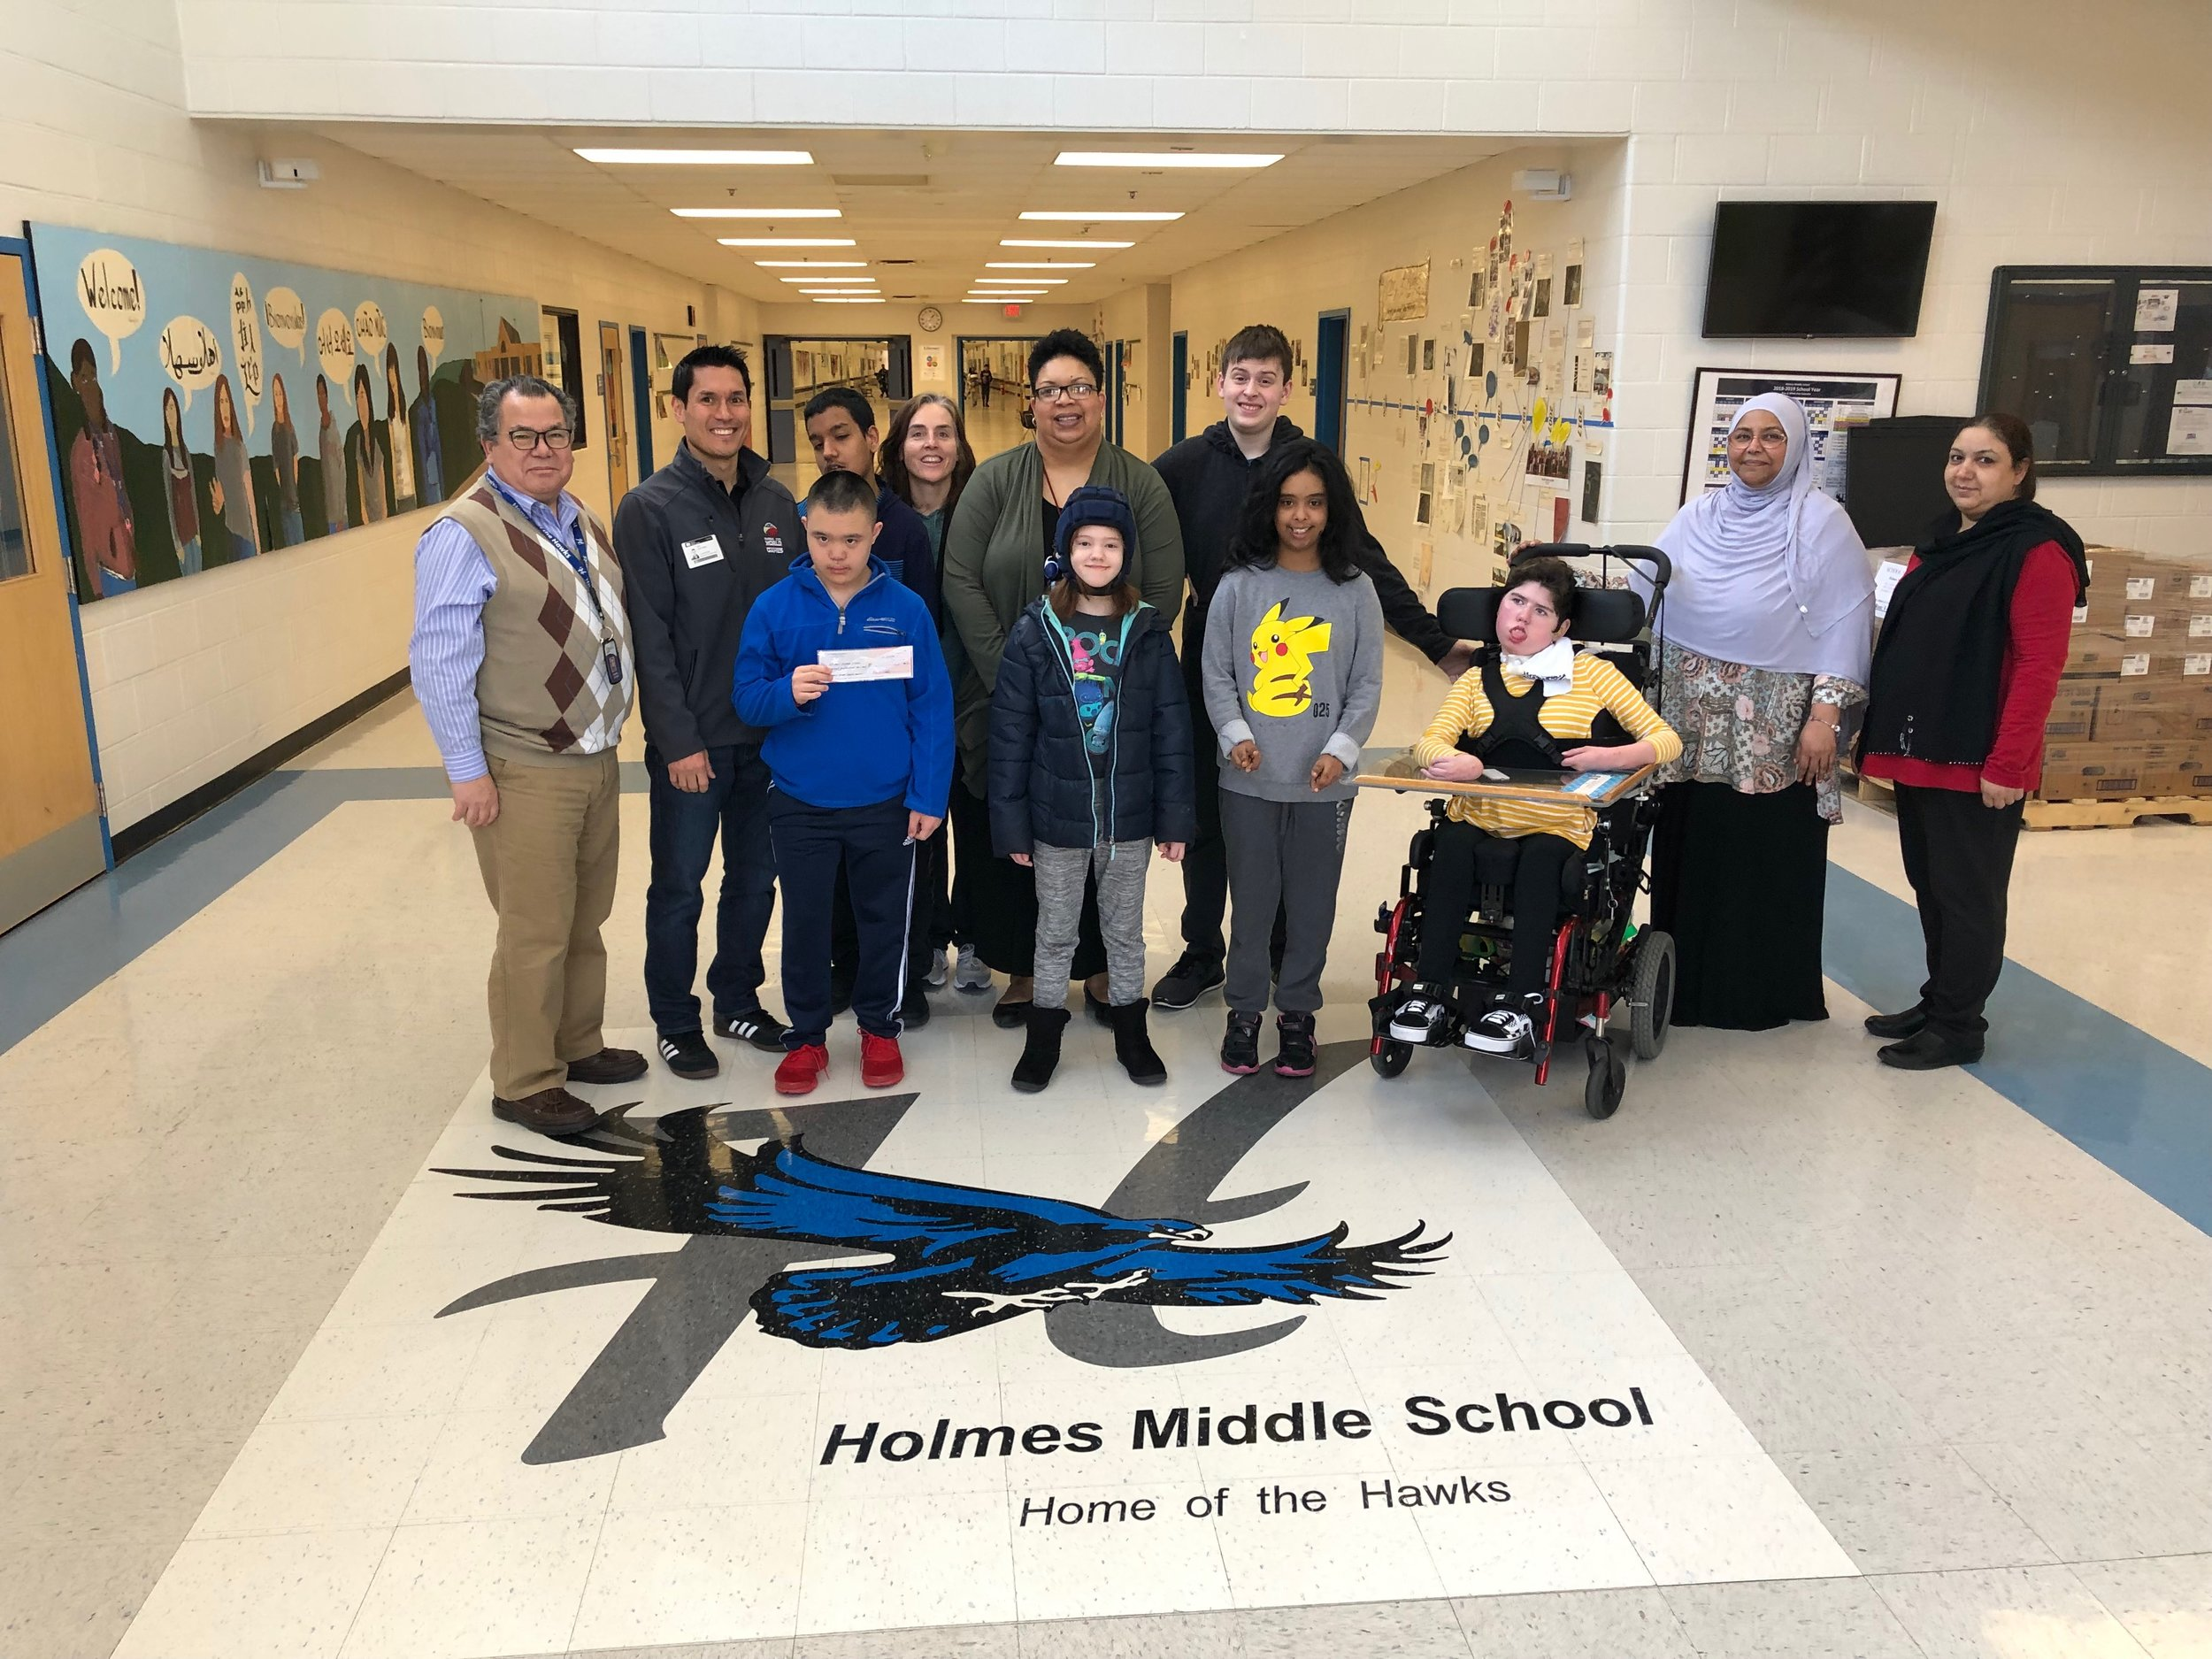 (Left to Right) Mr. Cabezas (After School Specialist), Ken Savittiere (K12AF & FCFRD), Mrs. Cheatham (PE/Adaptive), Mrs. Barnes (Principal), students and staff